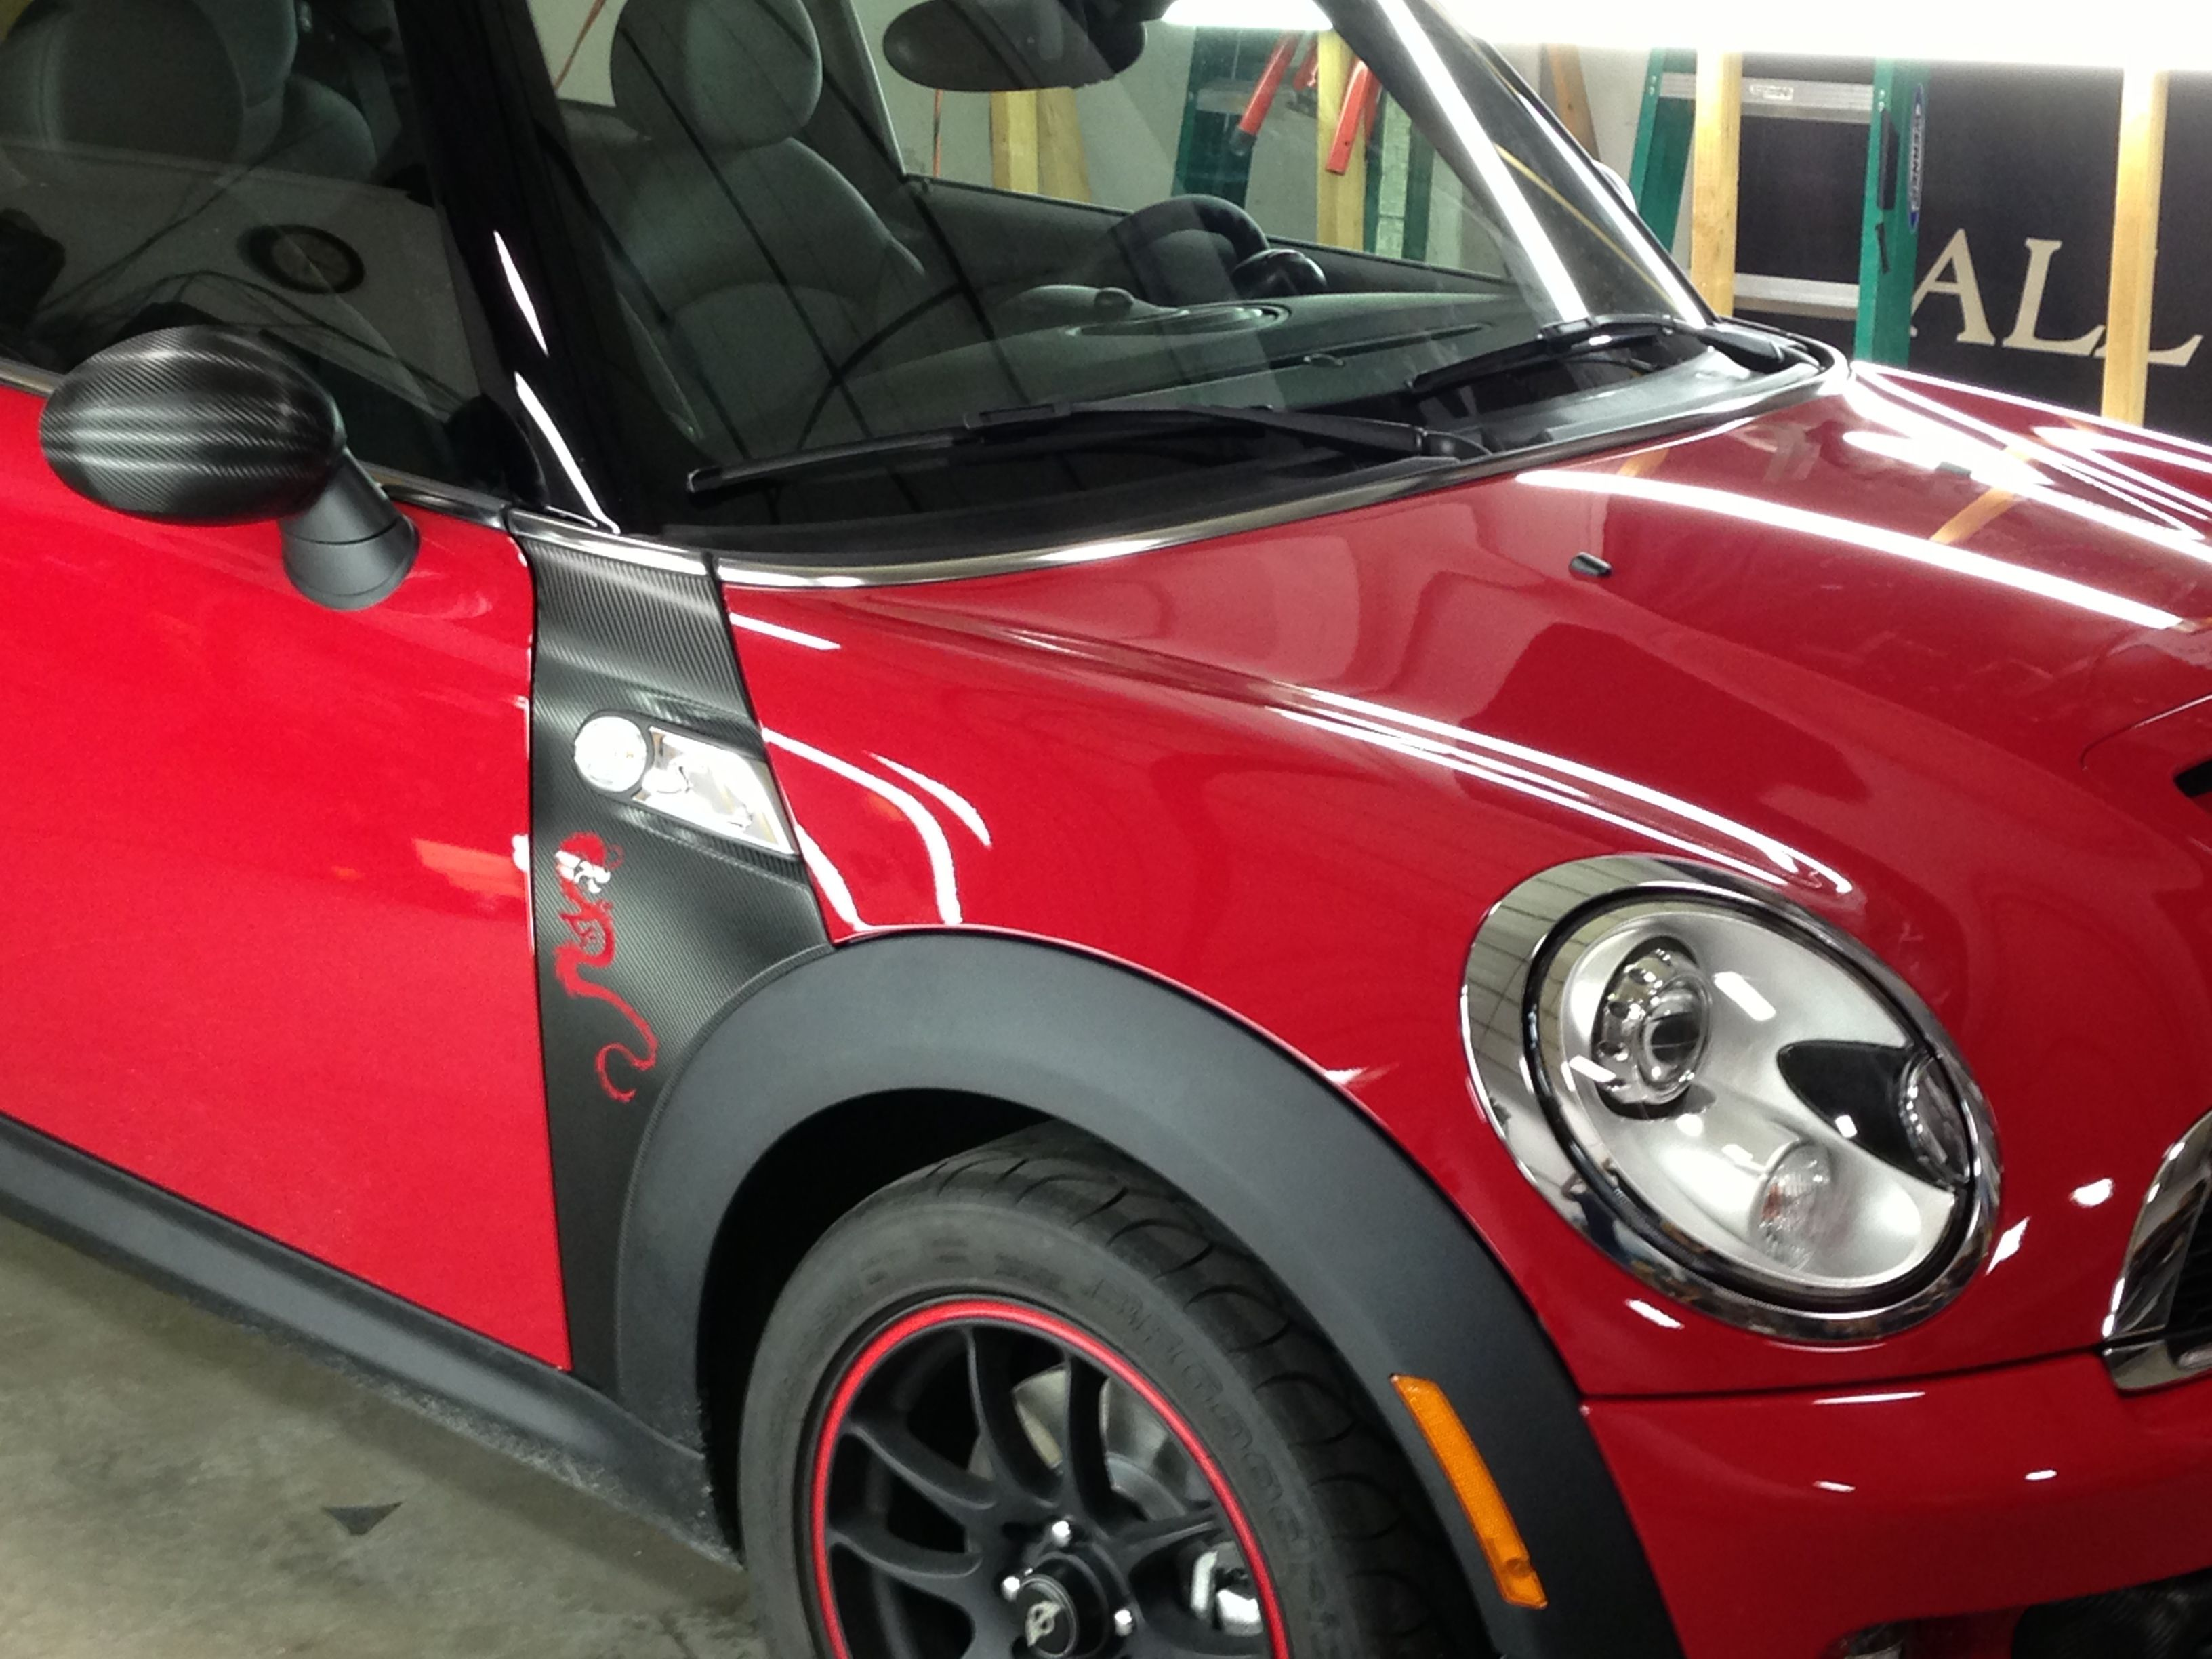 Premier graphics custom dragon decal on a mini cooper in denver colorado vehicle wraps